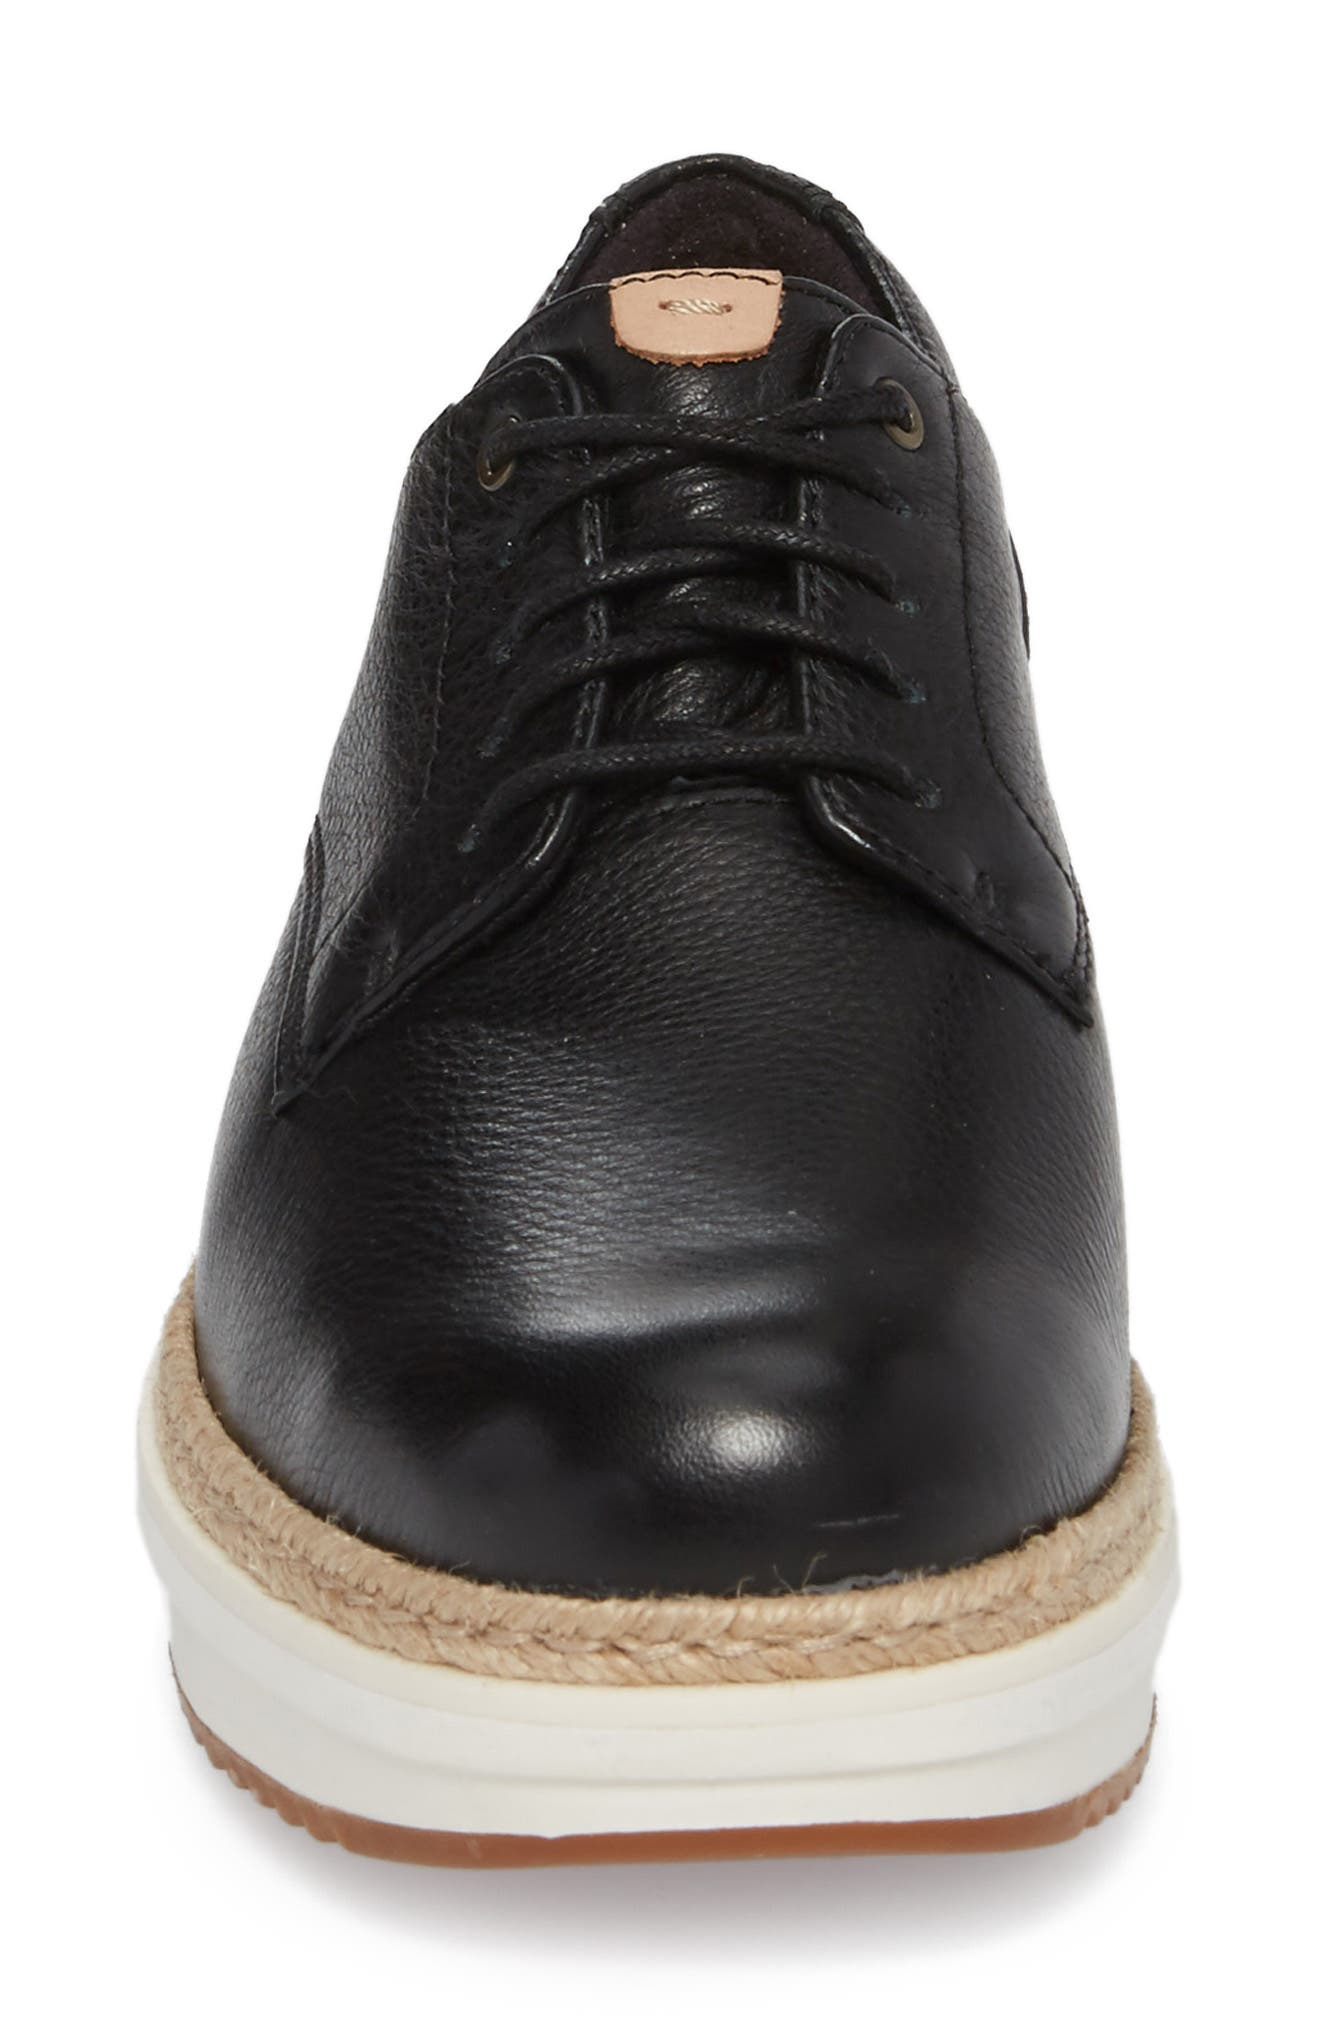 Teadale Rhea Sneaker,                             Alternate thumbnail 4, color,                             005